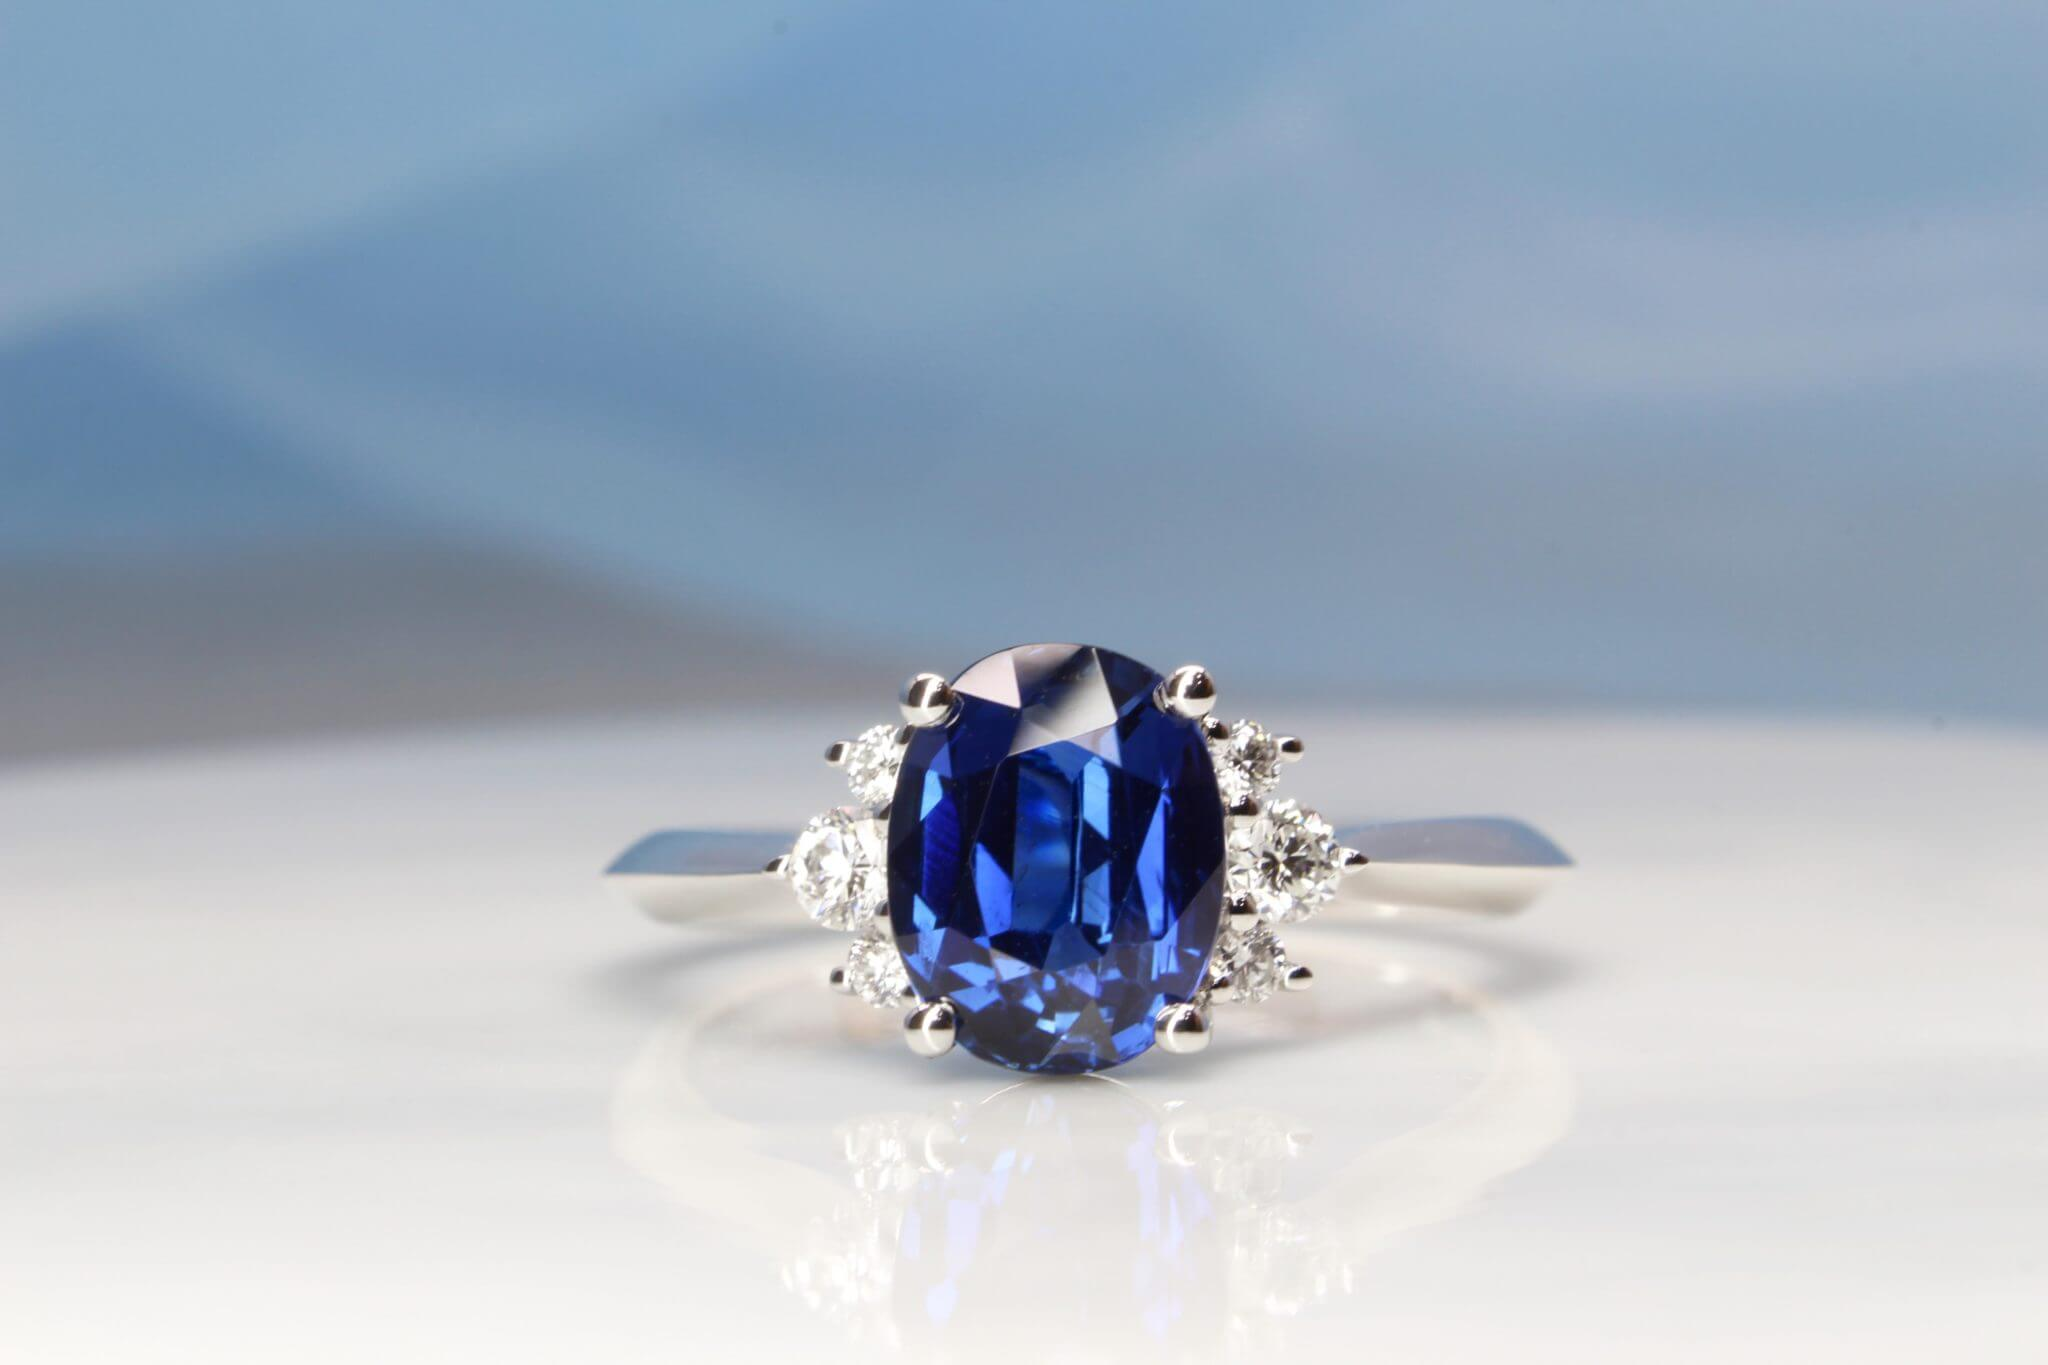 Sapphire Engagement Ring customised with cluster round brilliance diamond and detailing on the ring bands to create a sharp look on the sides | Local Singapore Customised Jeweller Designed ring to look truly modern and unique with sapphire gemstone.